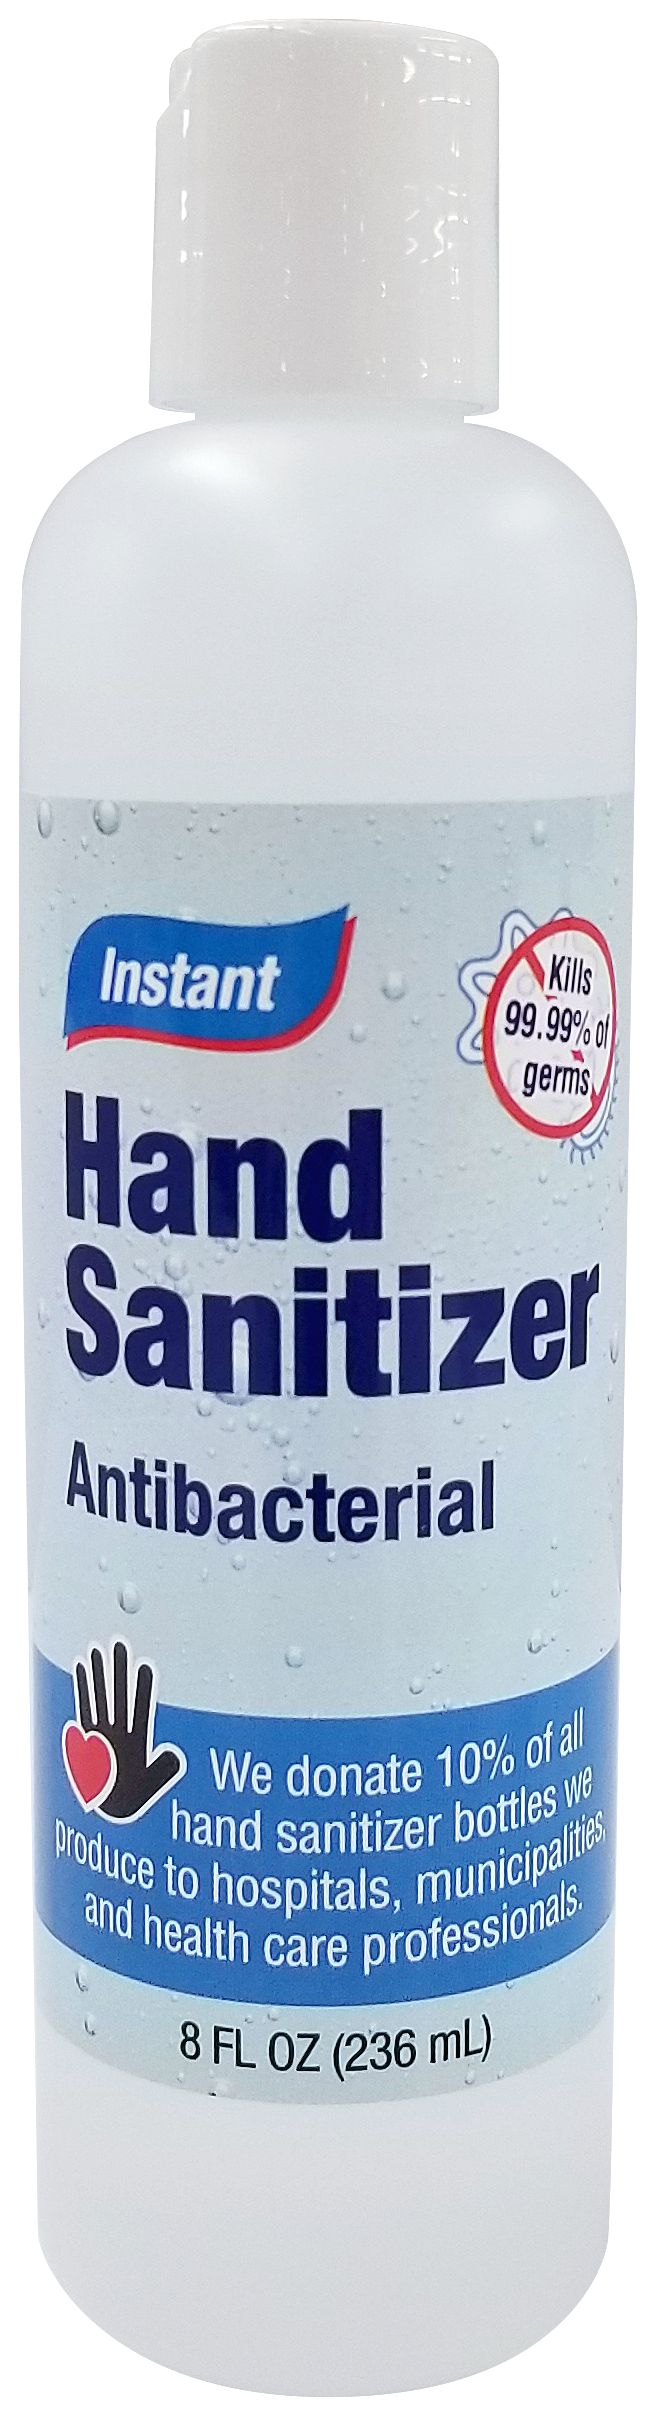 Antibacterial Hand Sanitizer - 80% Alcohol Concentration Single Bottles